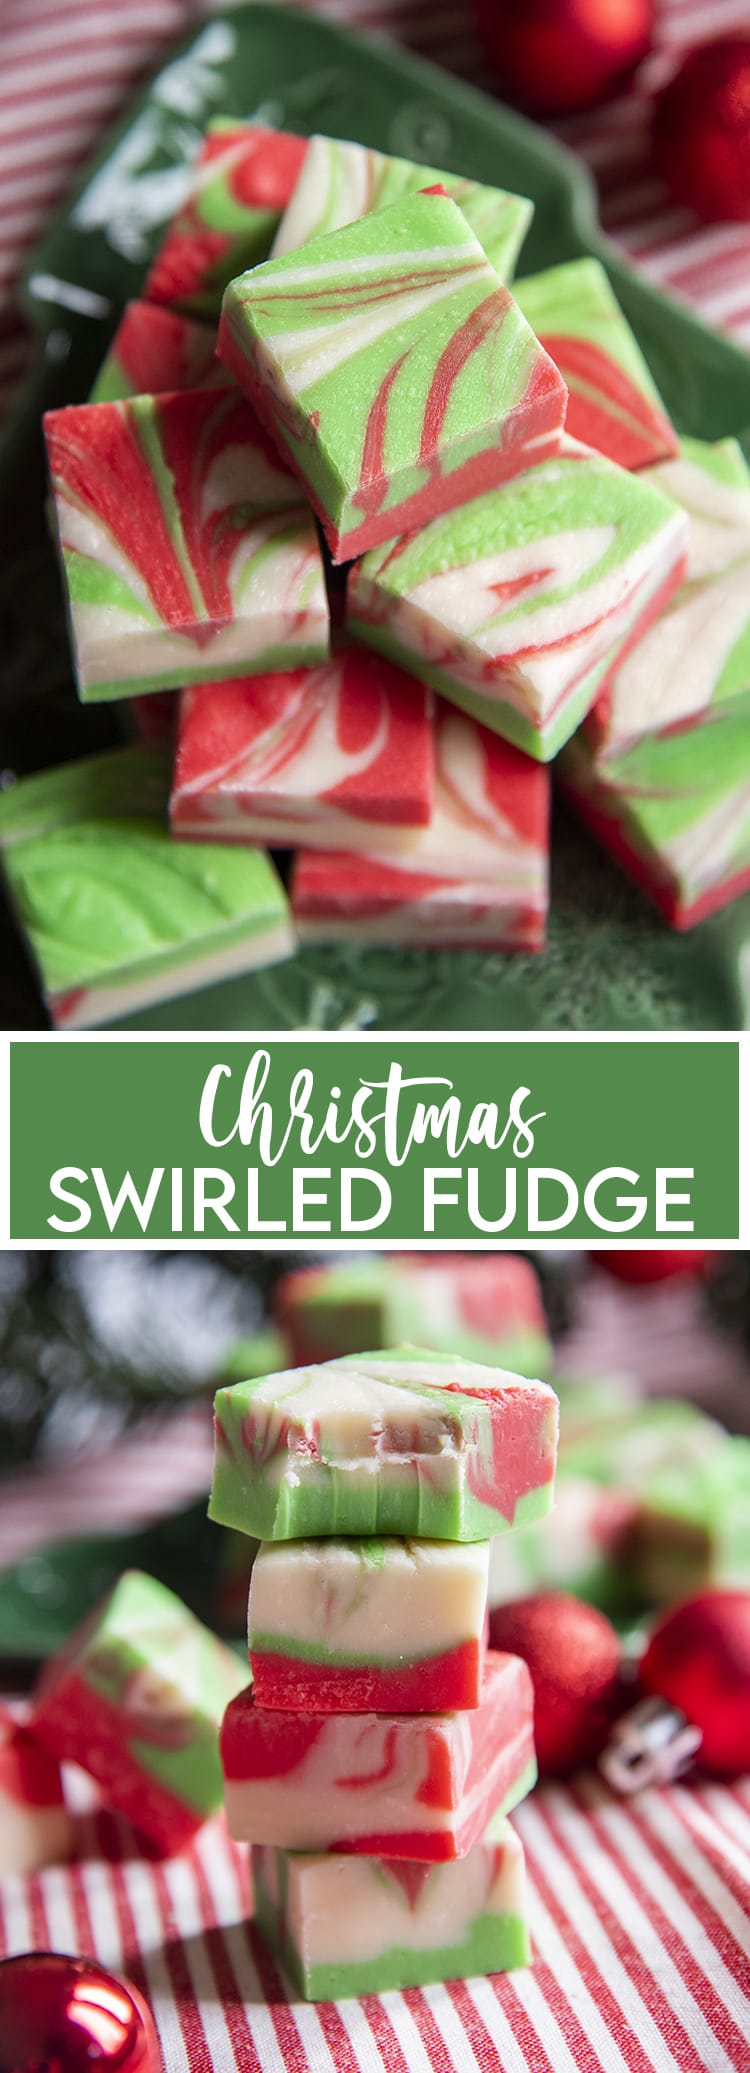 A pile of white chocolate microwave fudge, that is swirled with red and green colors throughout with a text overlay at the bottom for pinterest. Then a stack of the fudge, the top piece has a bite taken out of it.